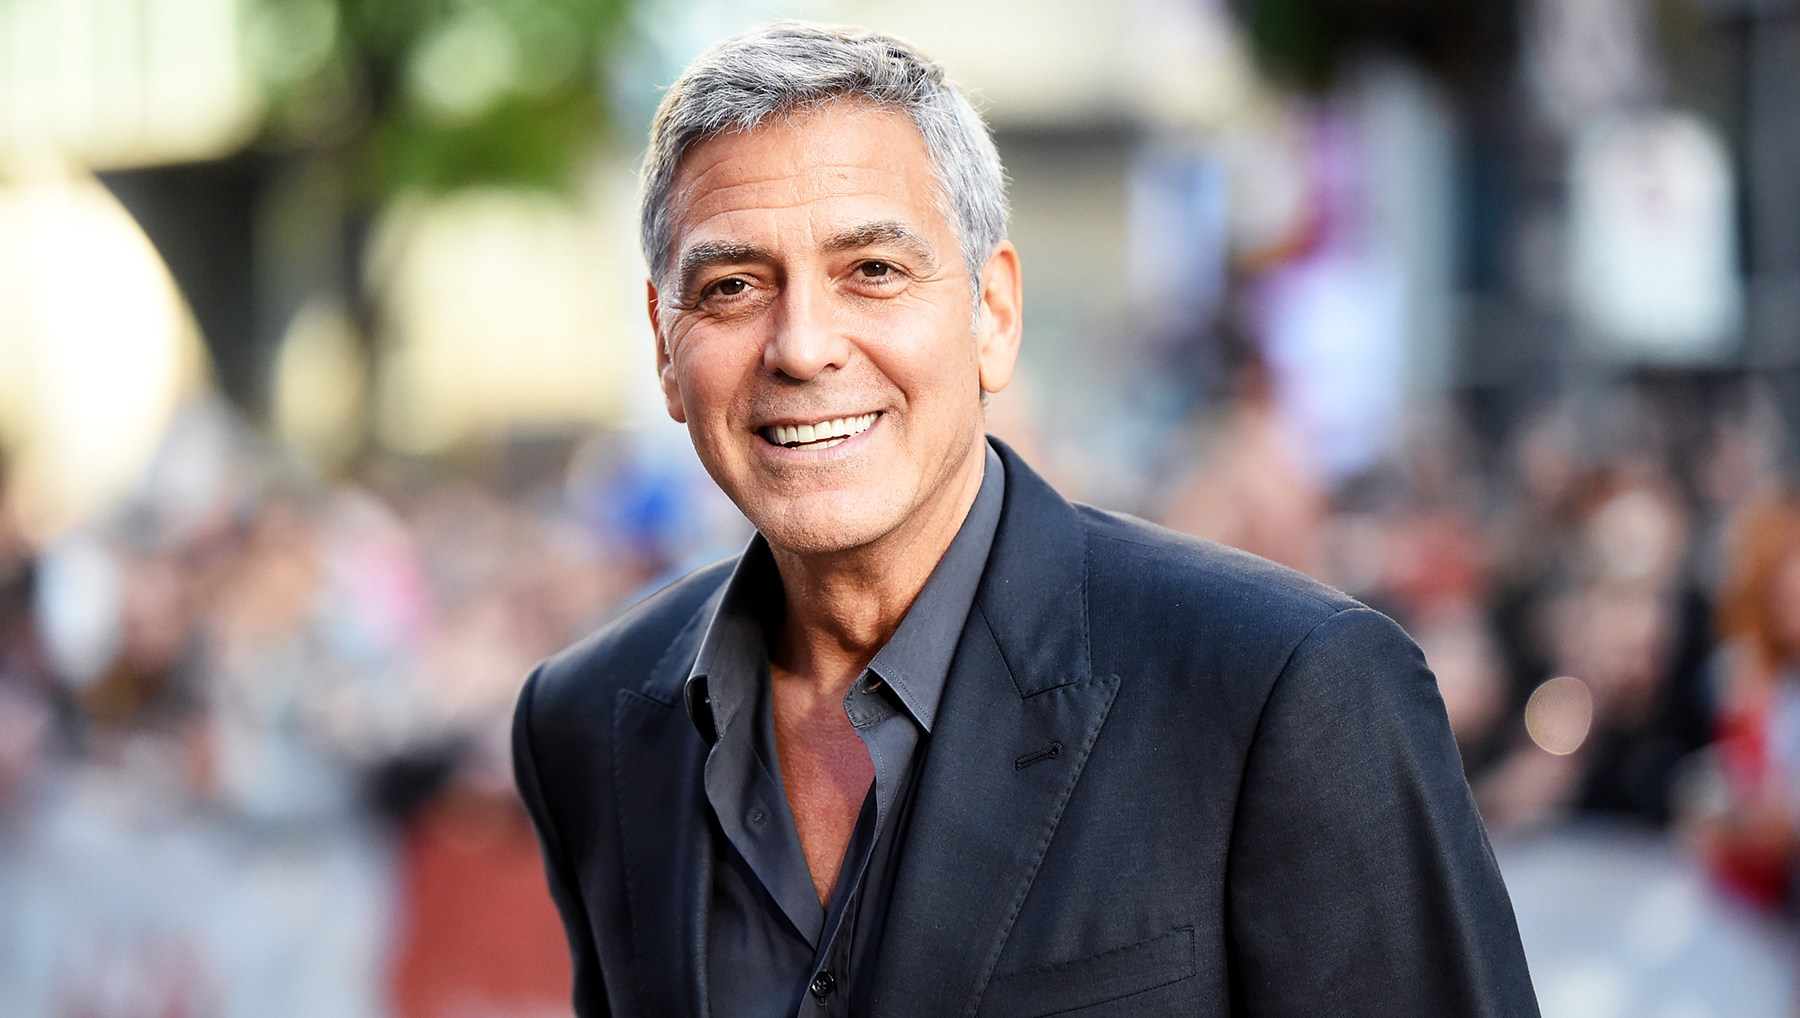 George Clooney Gifted Friends One Million Dollars